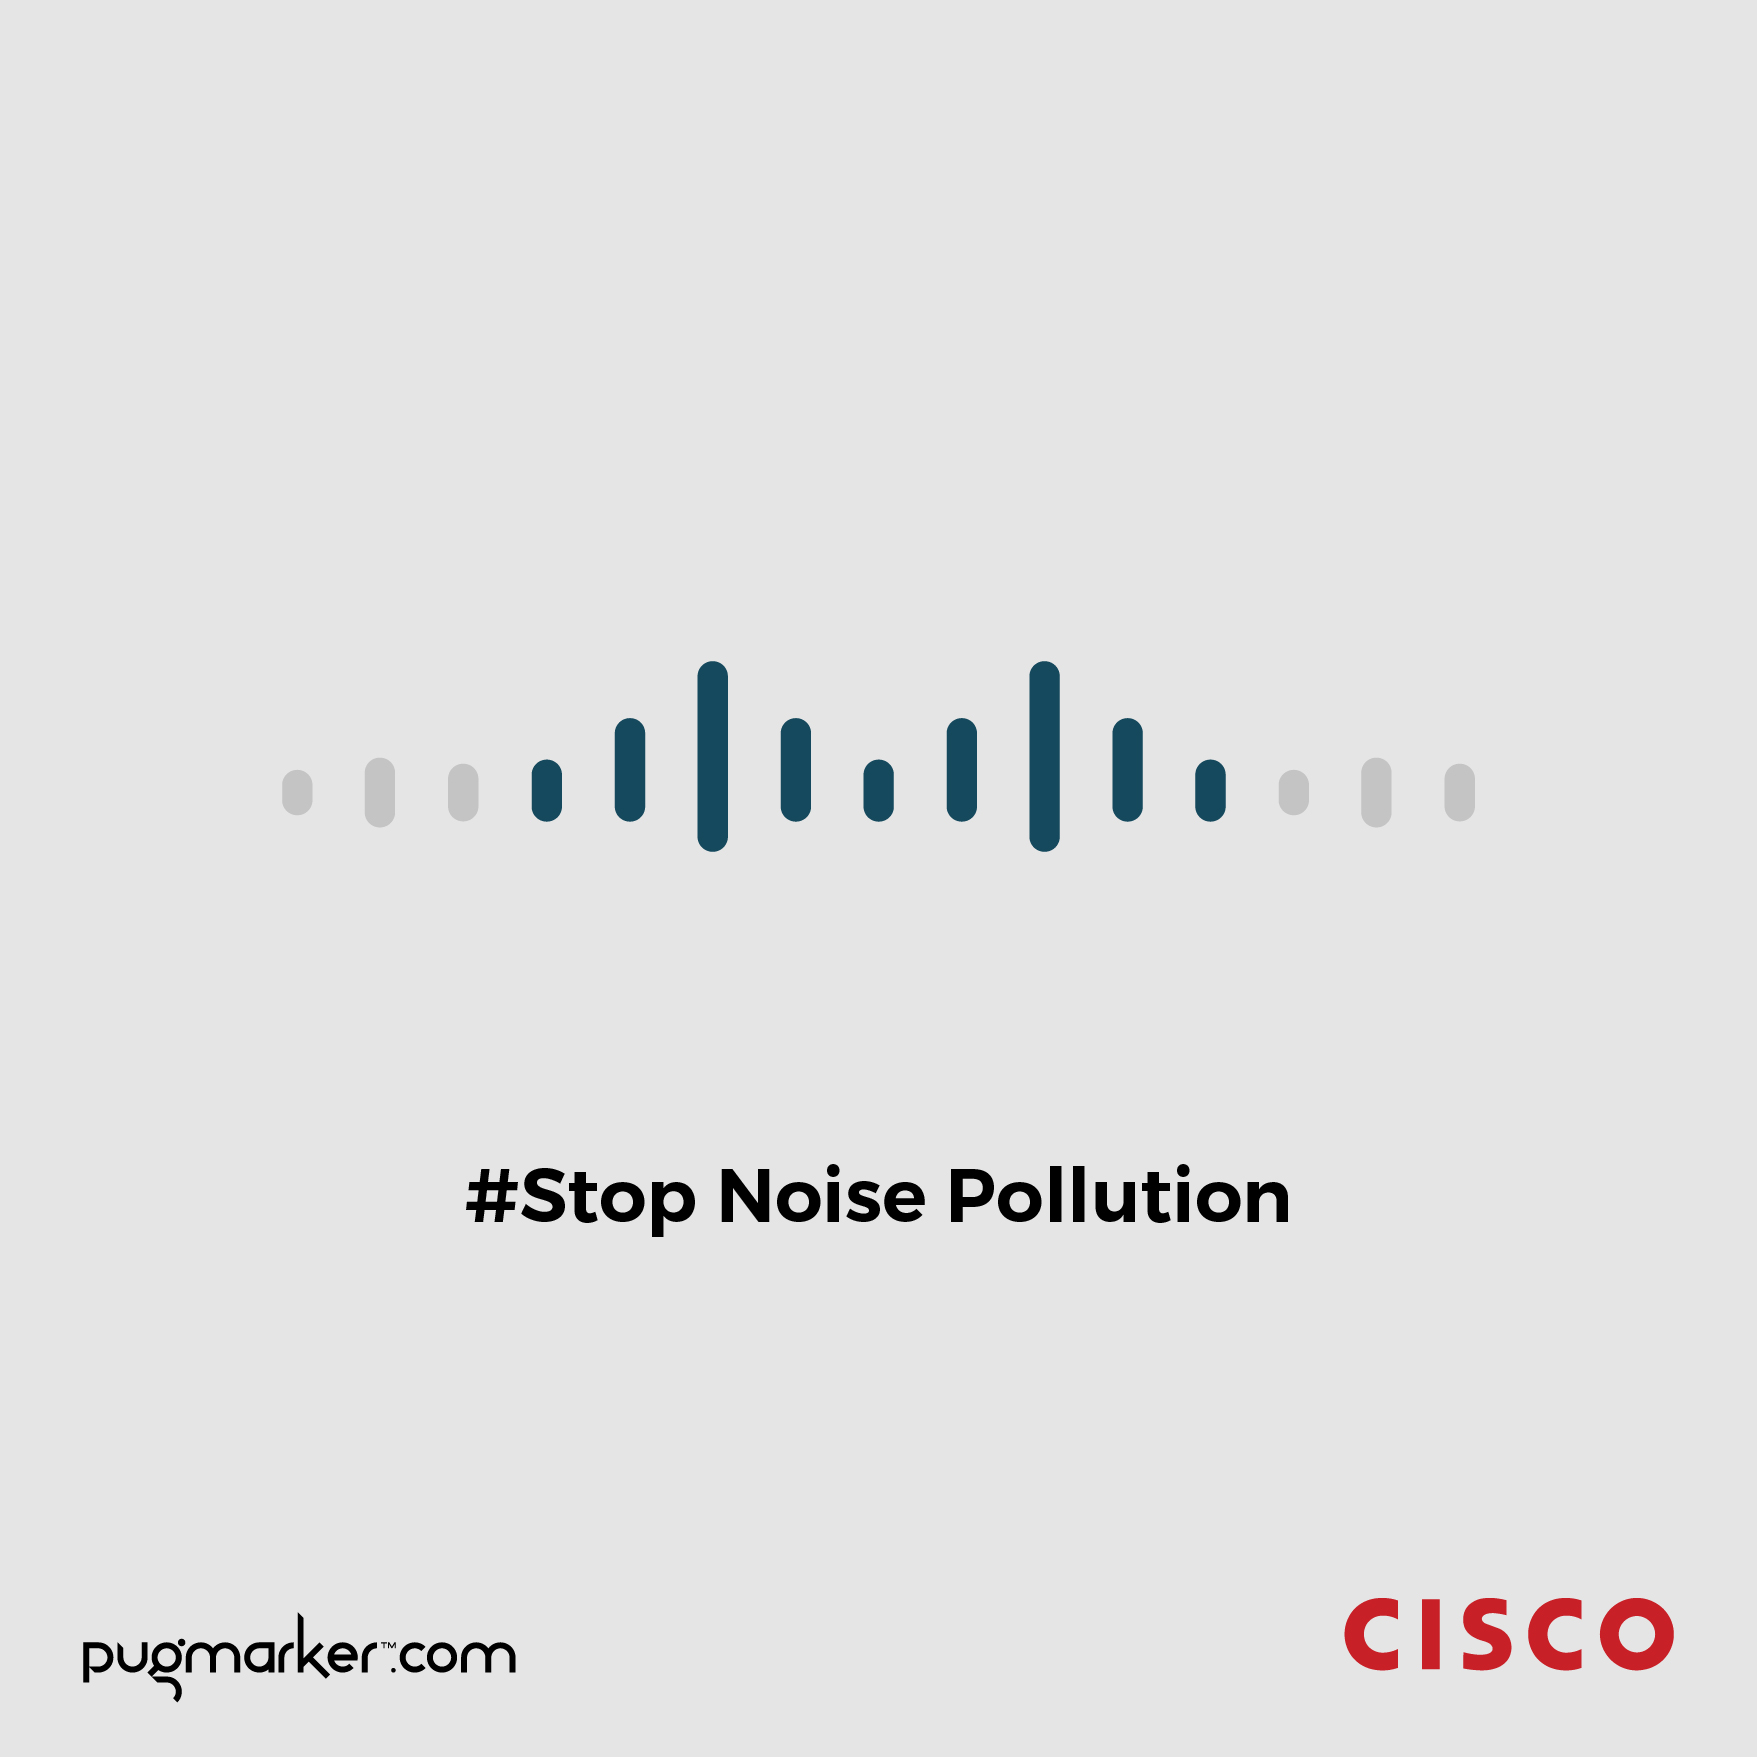 Cisco - Stop Noise Pollution